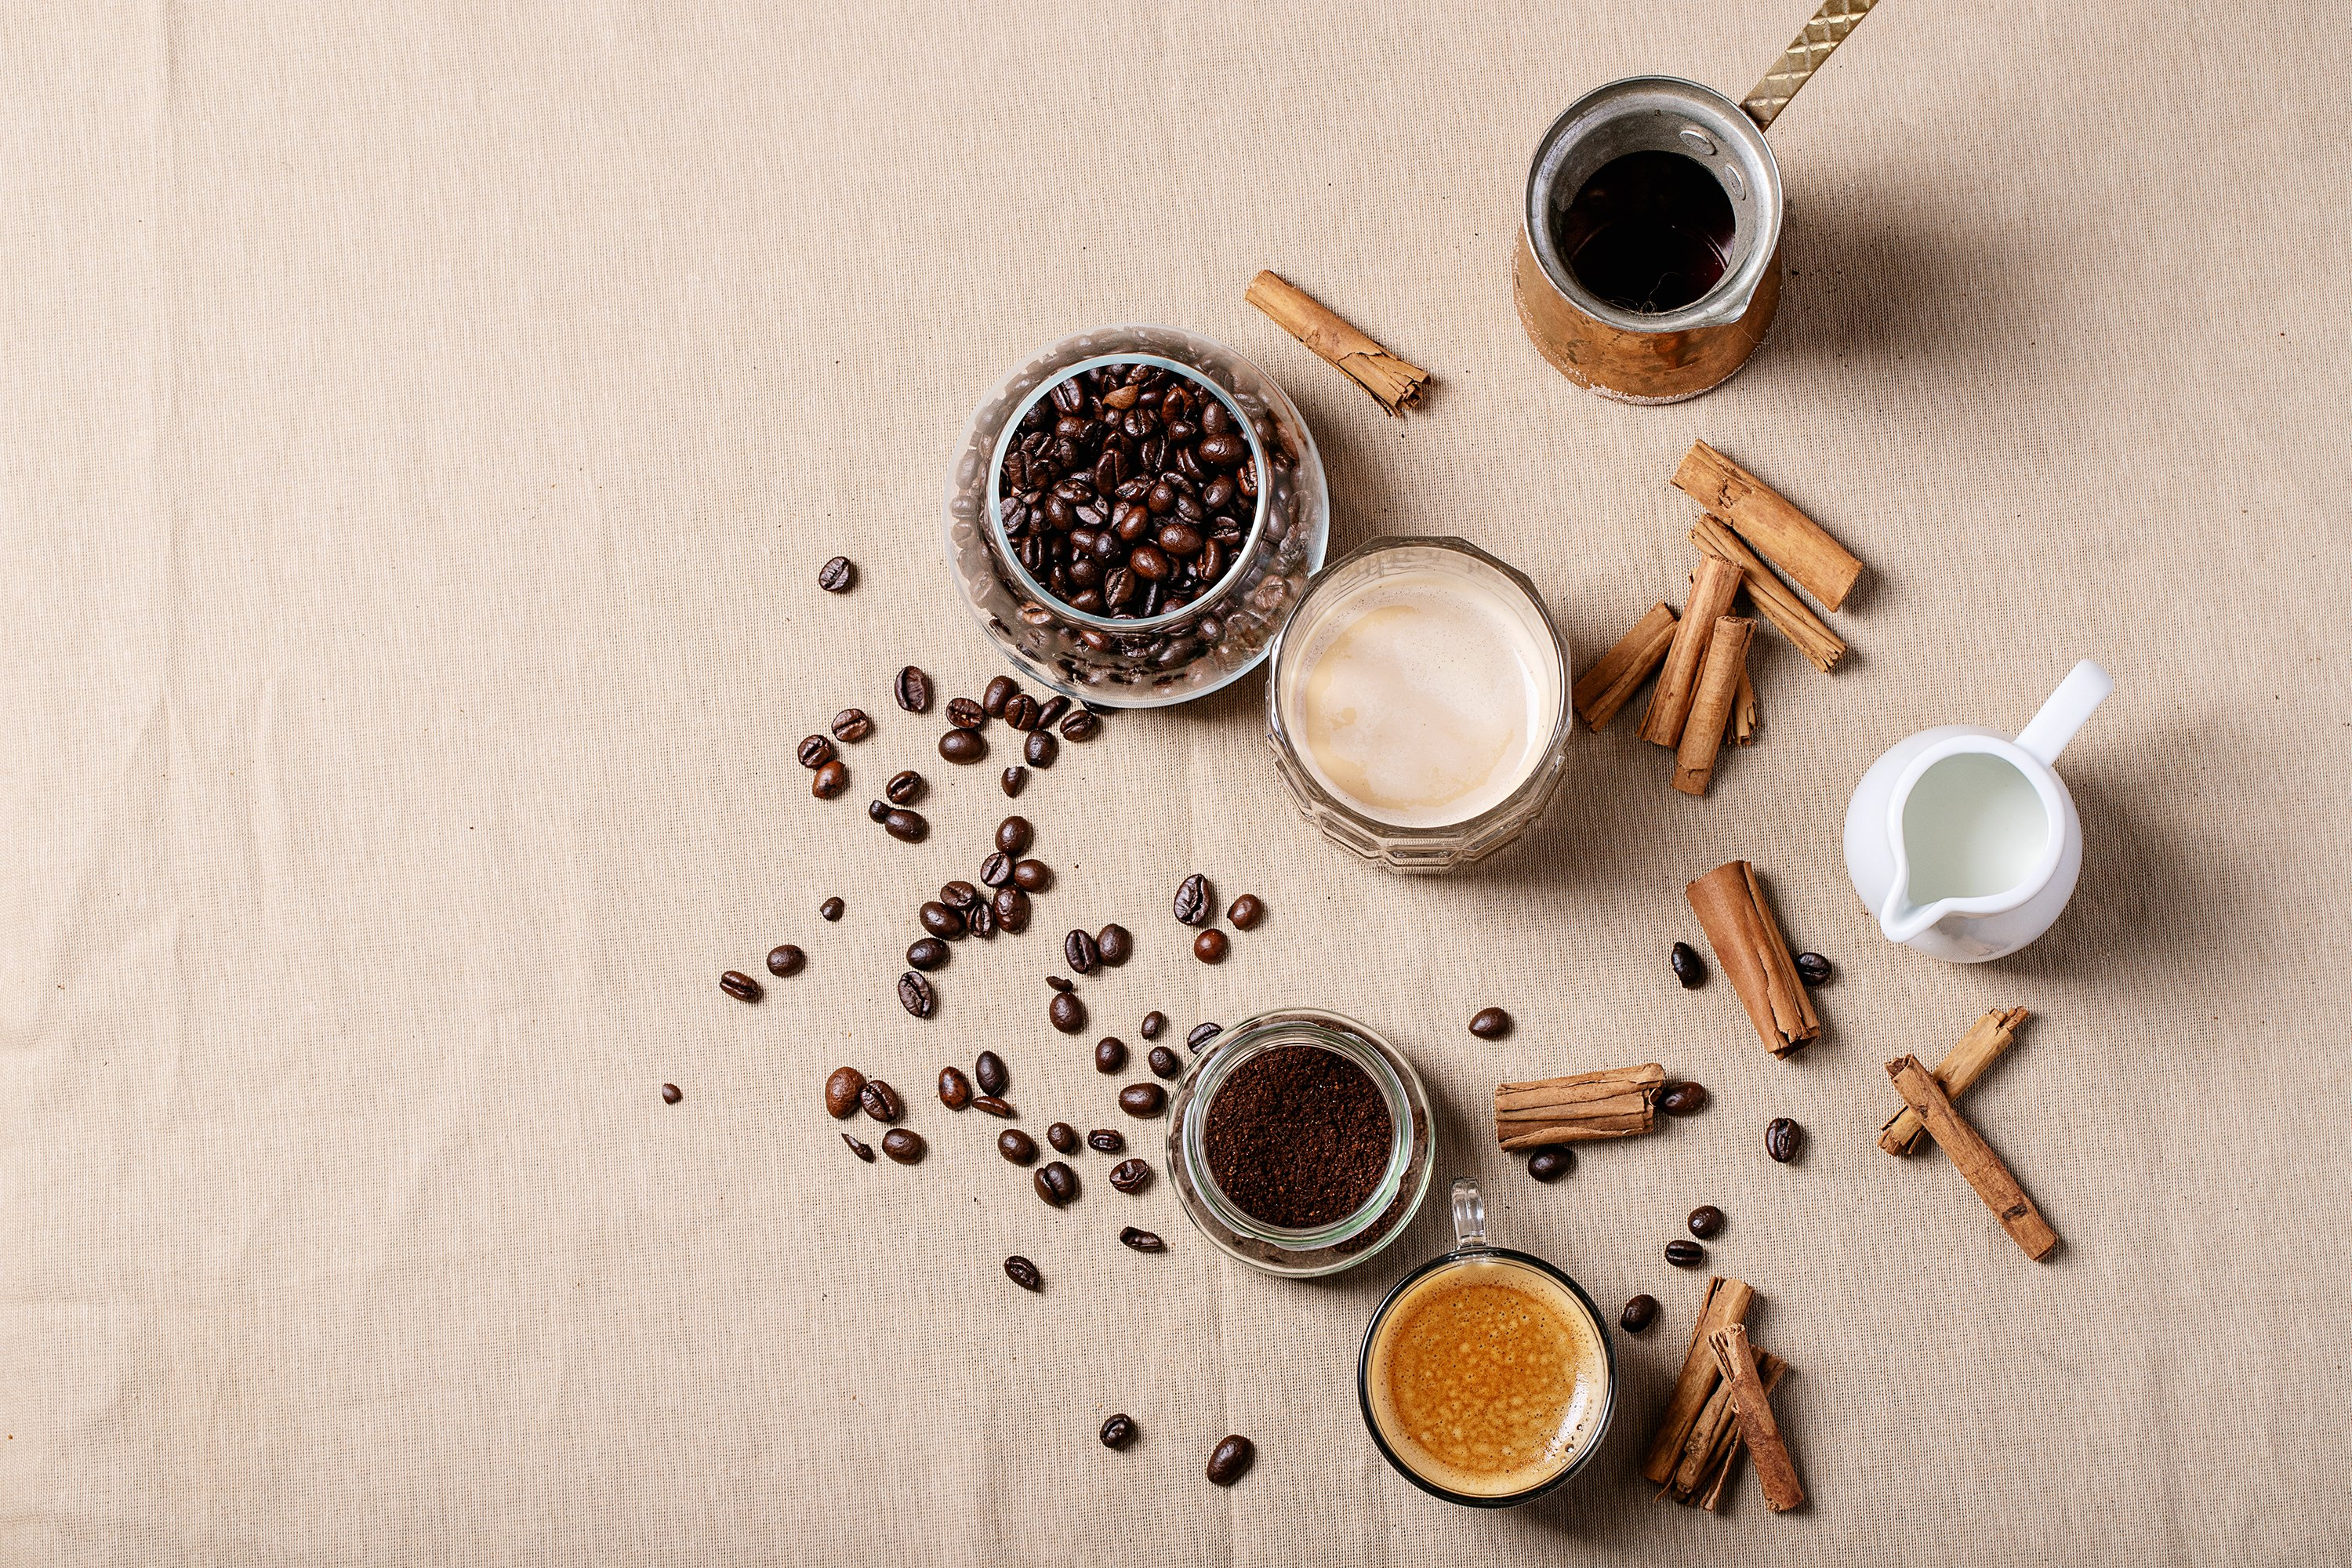 Fresh coffee with cinnamon example image 1